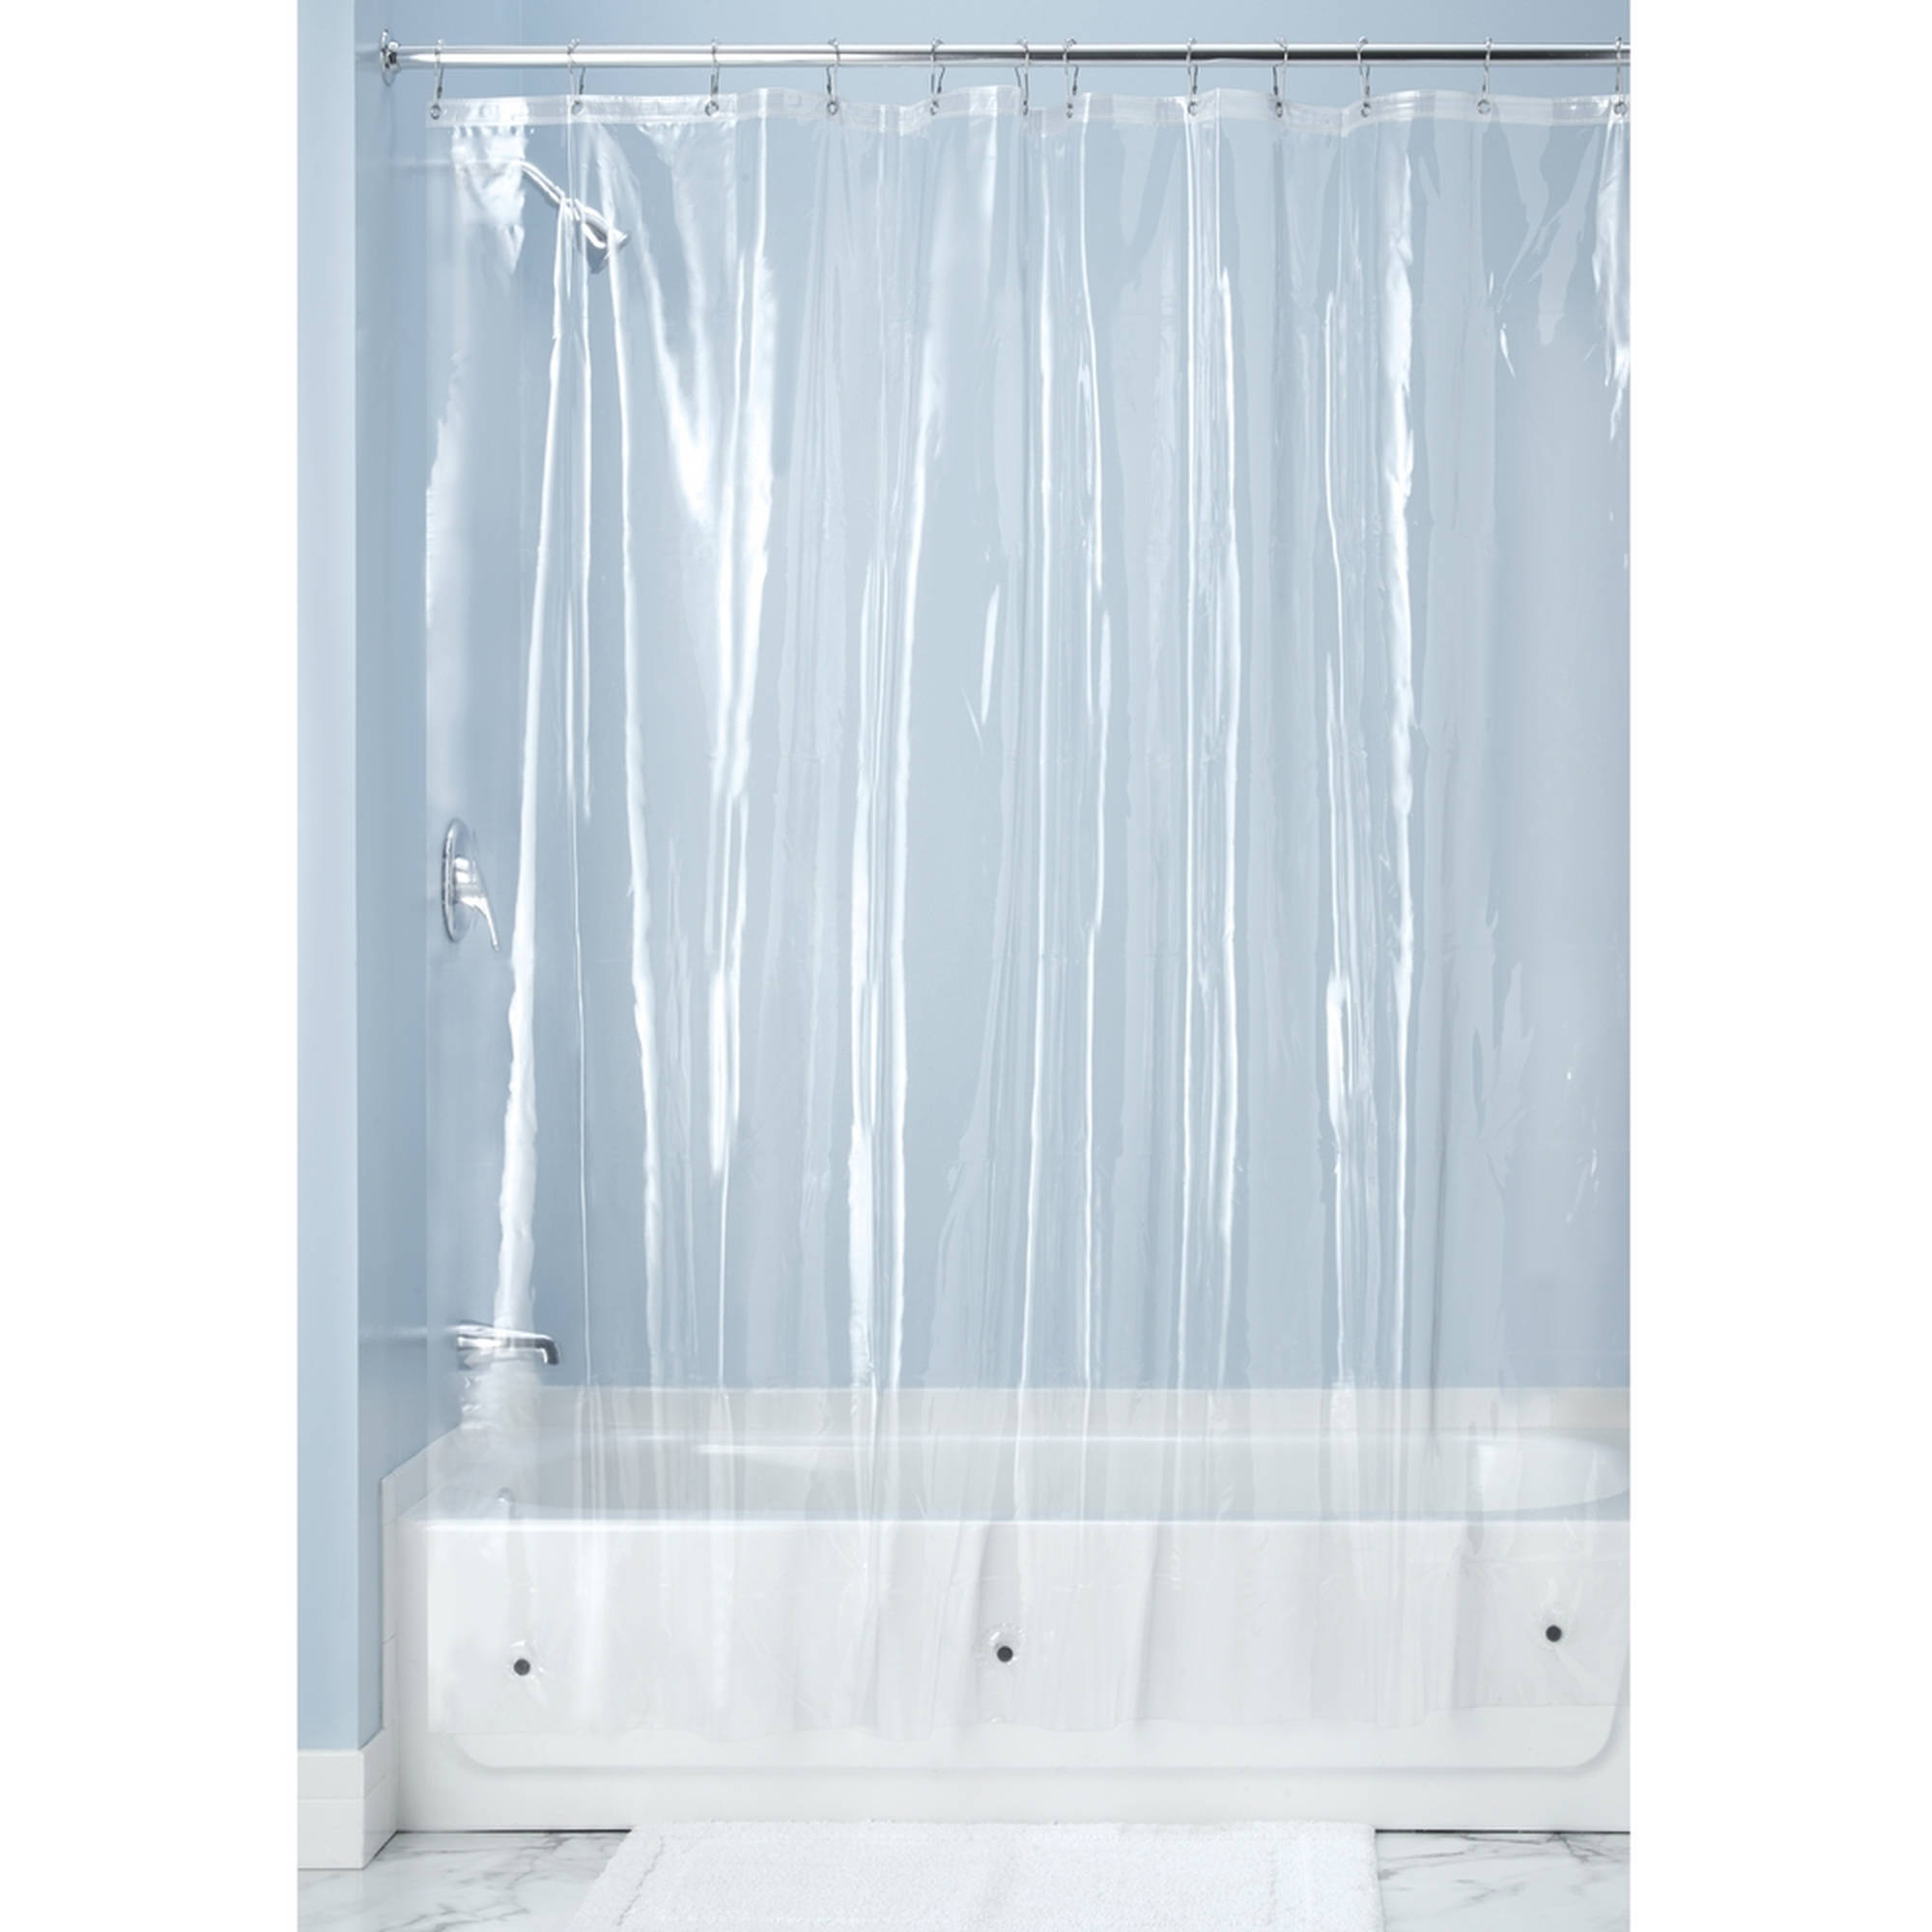 Glass Shower Curtains Interdesign Vinyl Shower Curtain Liner Standard 72